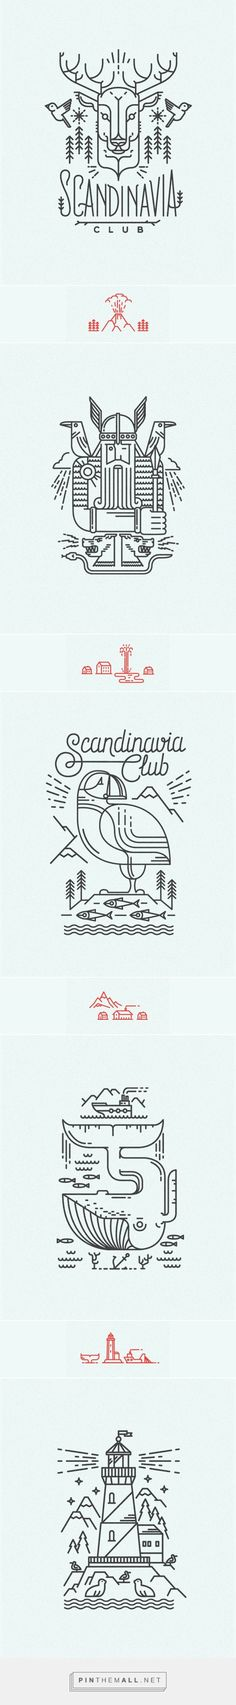 Scandinavian line illustrations for Scandinavia Club in Moscow